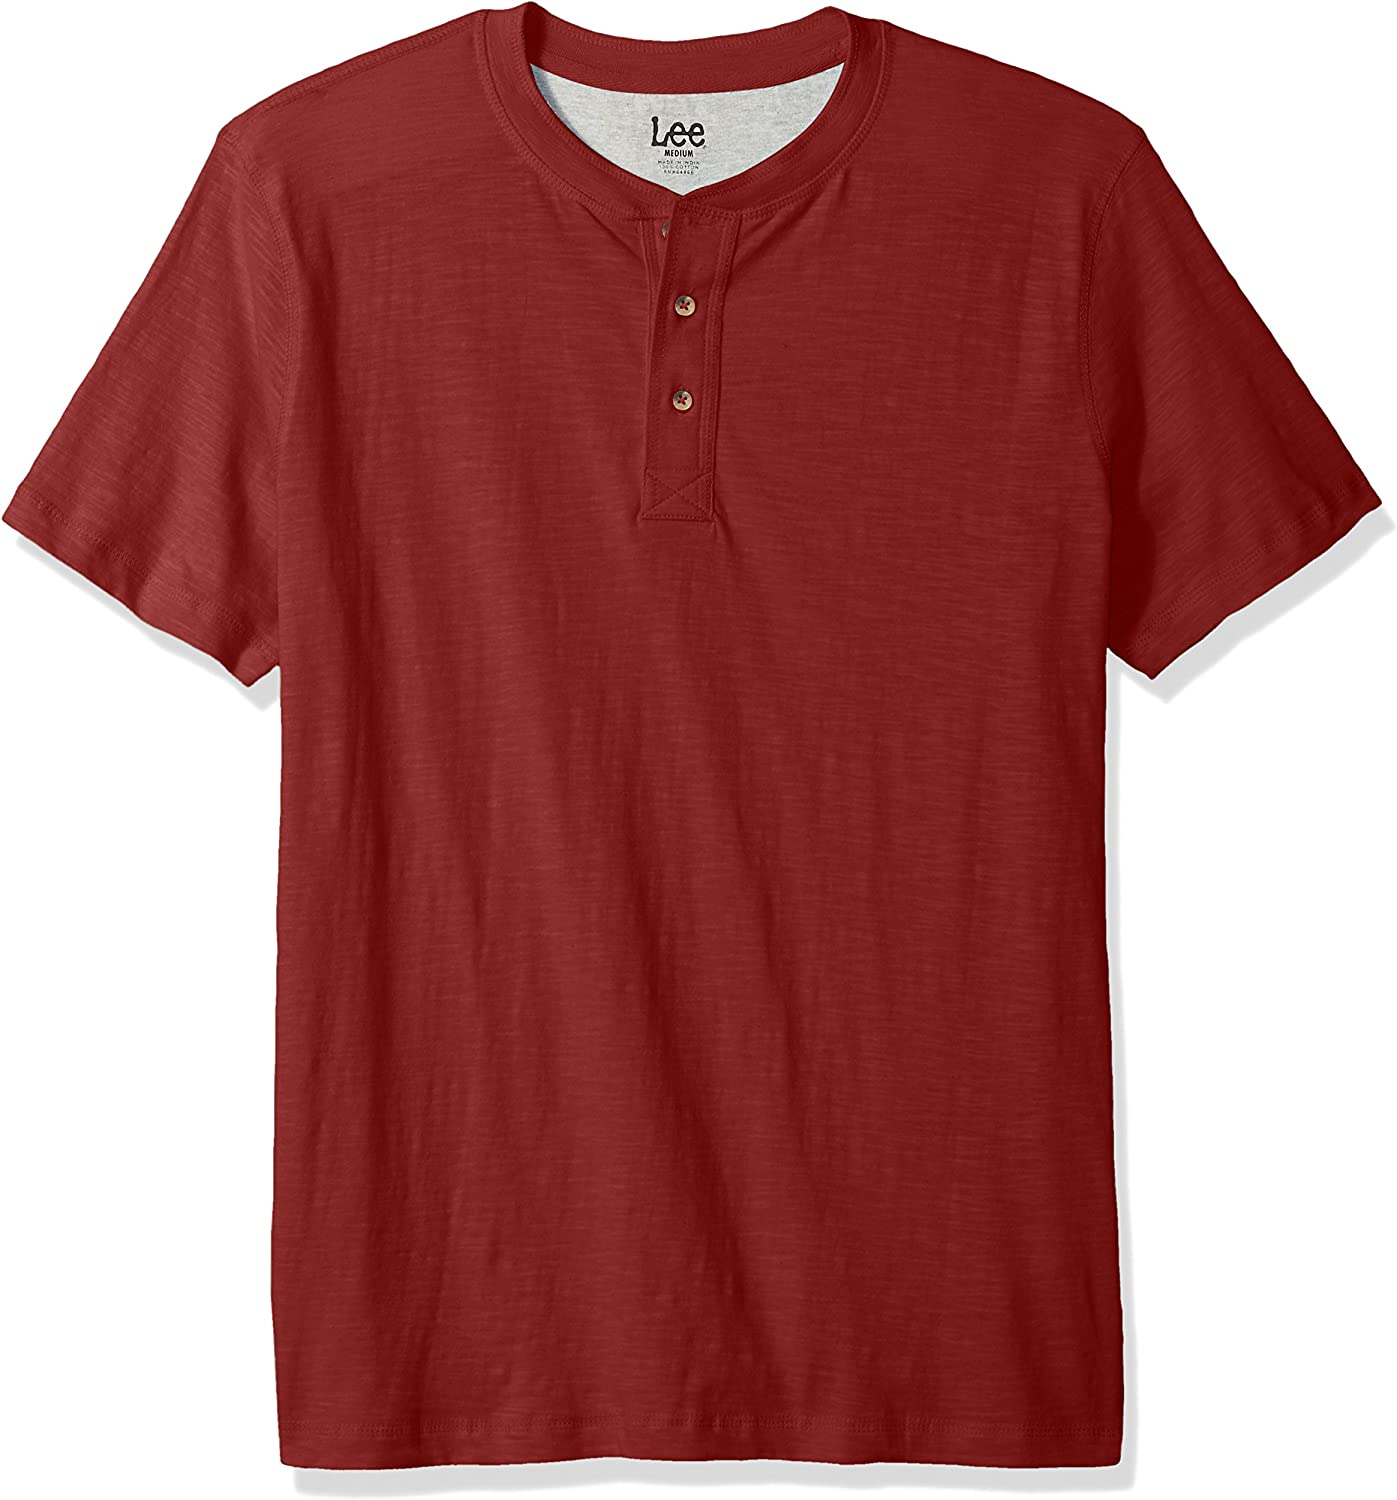 LEE Men's Henley Short Sleeve T-Shirt   Casual, Soft Breathable Cotton Tee   Regular Fit, Big and Tall